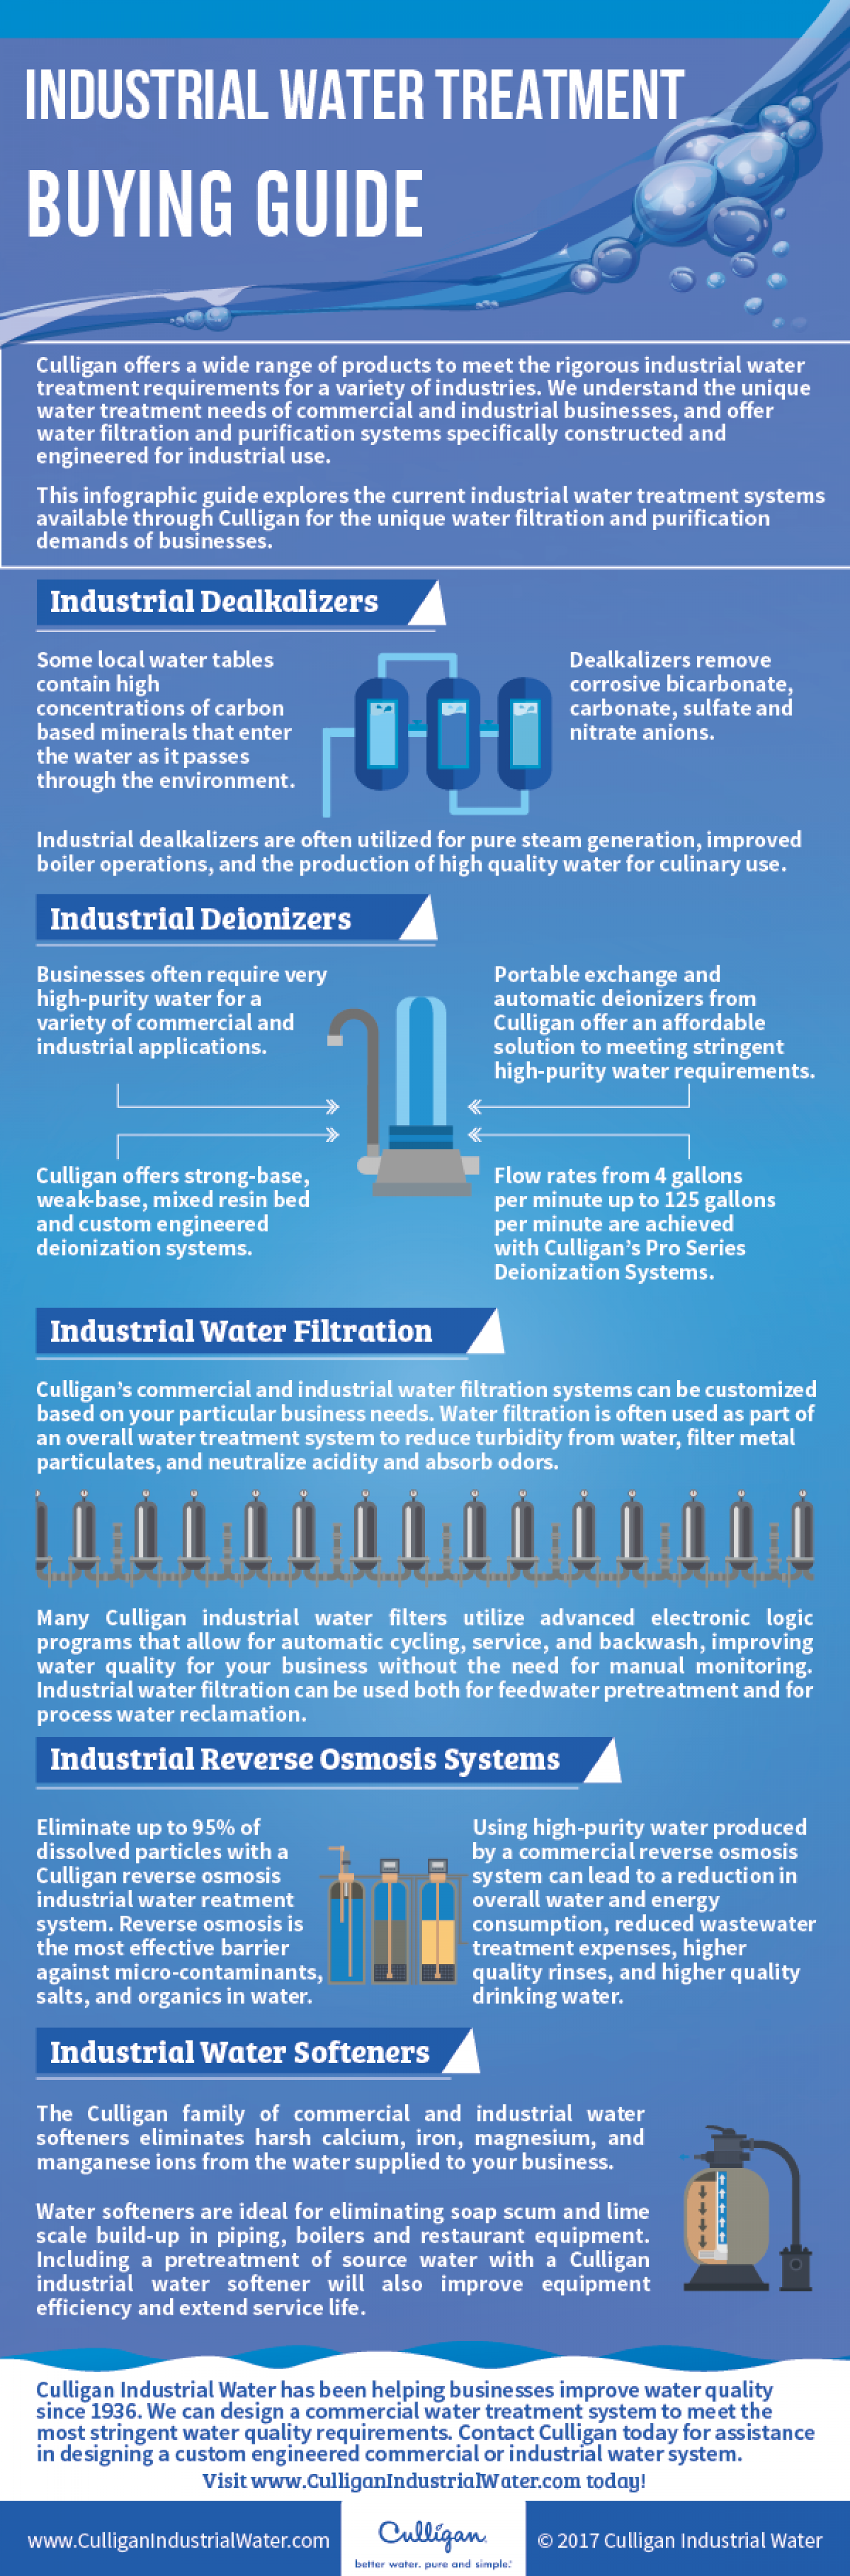 Industrial Water Treatment Buying Guide Infographic